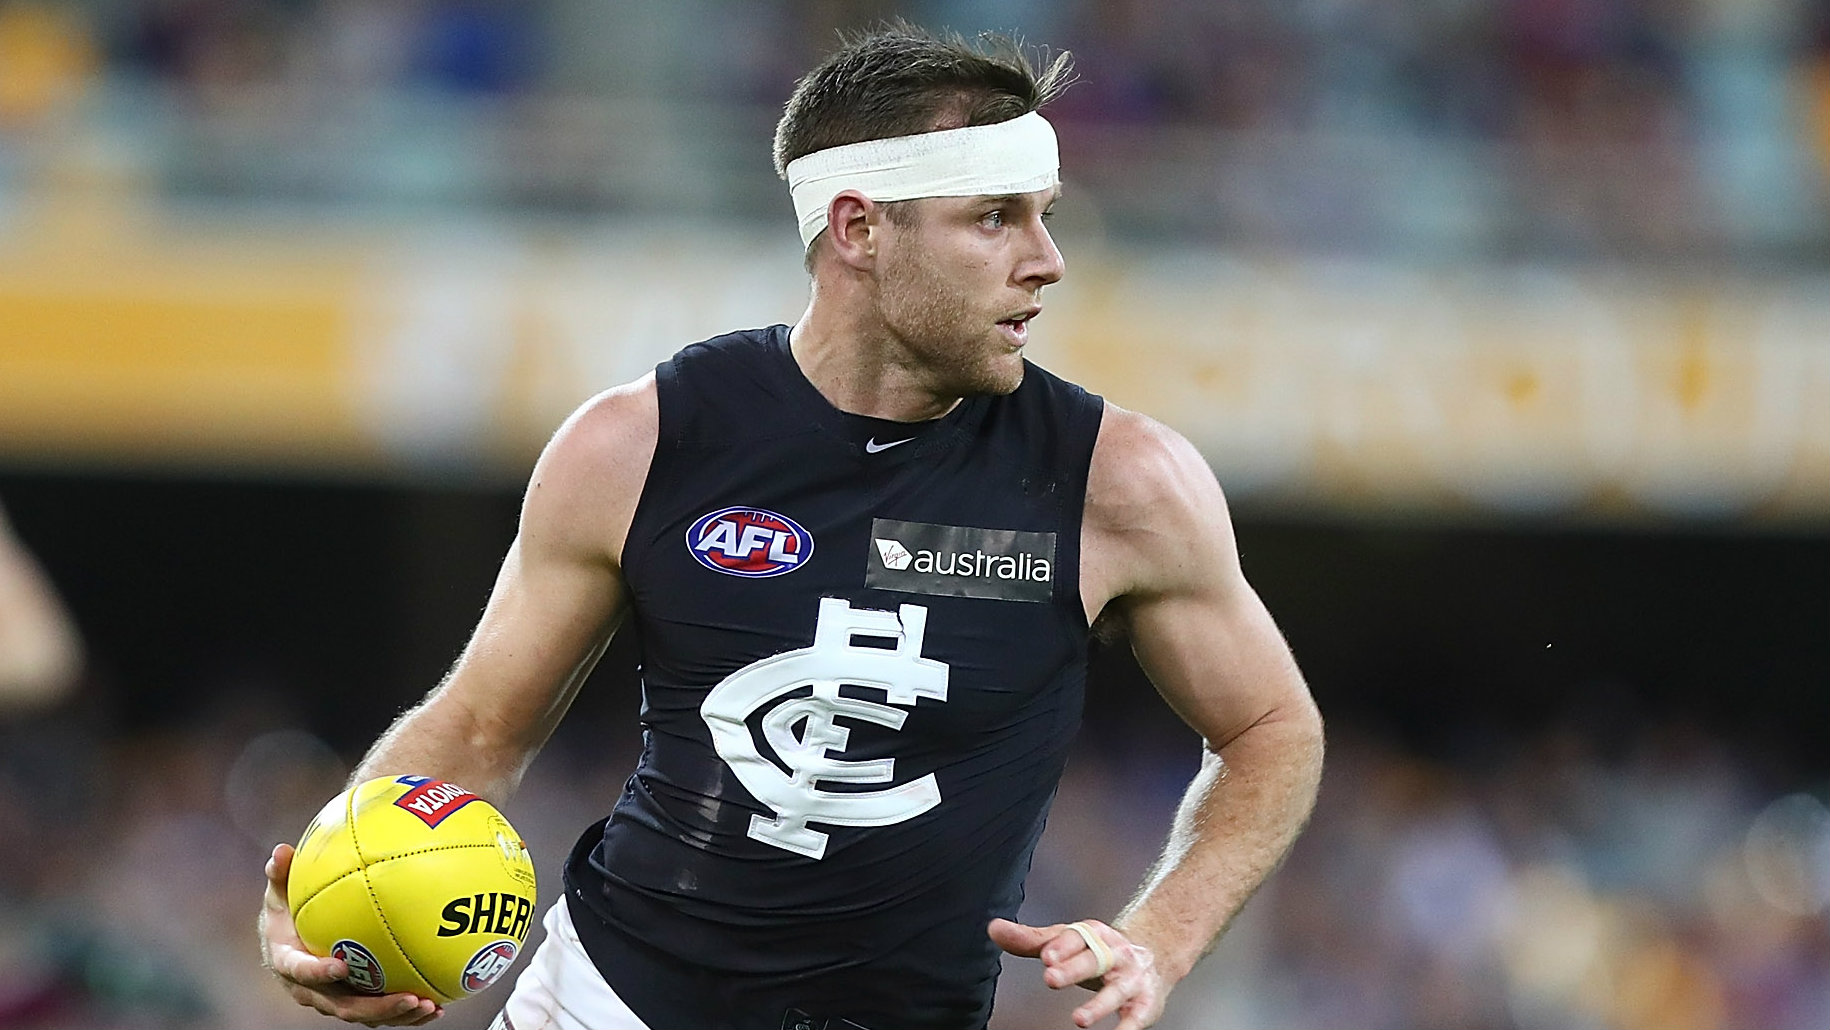 AFL 2020: Sam Docherty inks new two-year Carlton deal after inspirational return